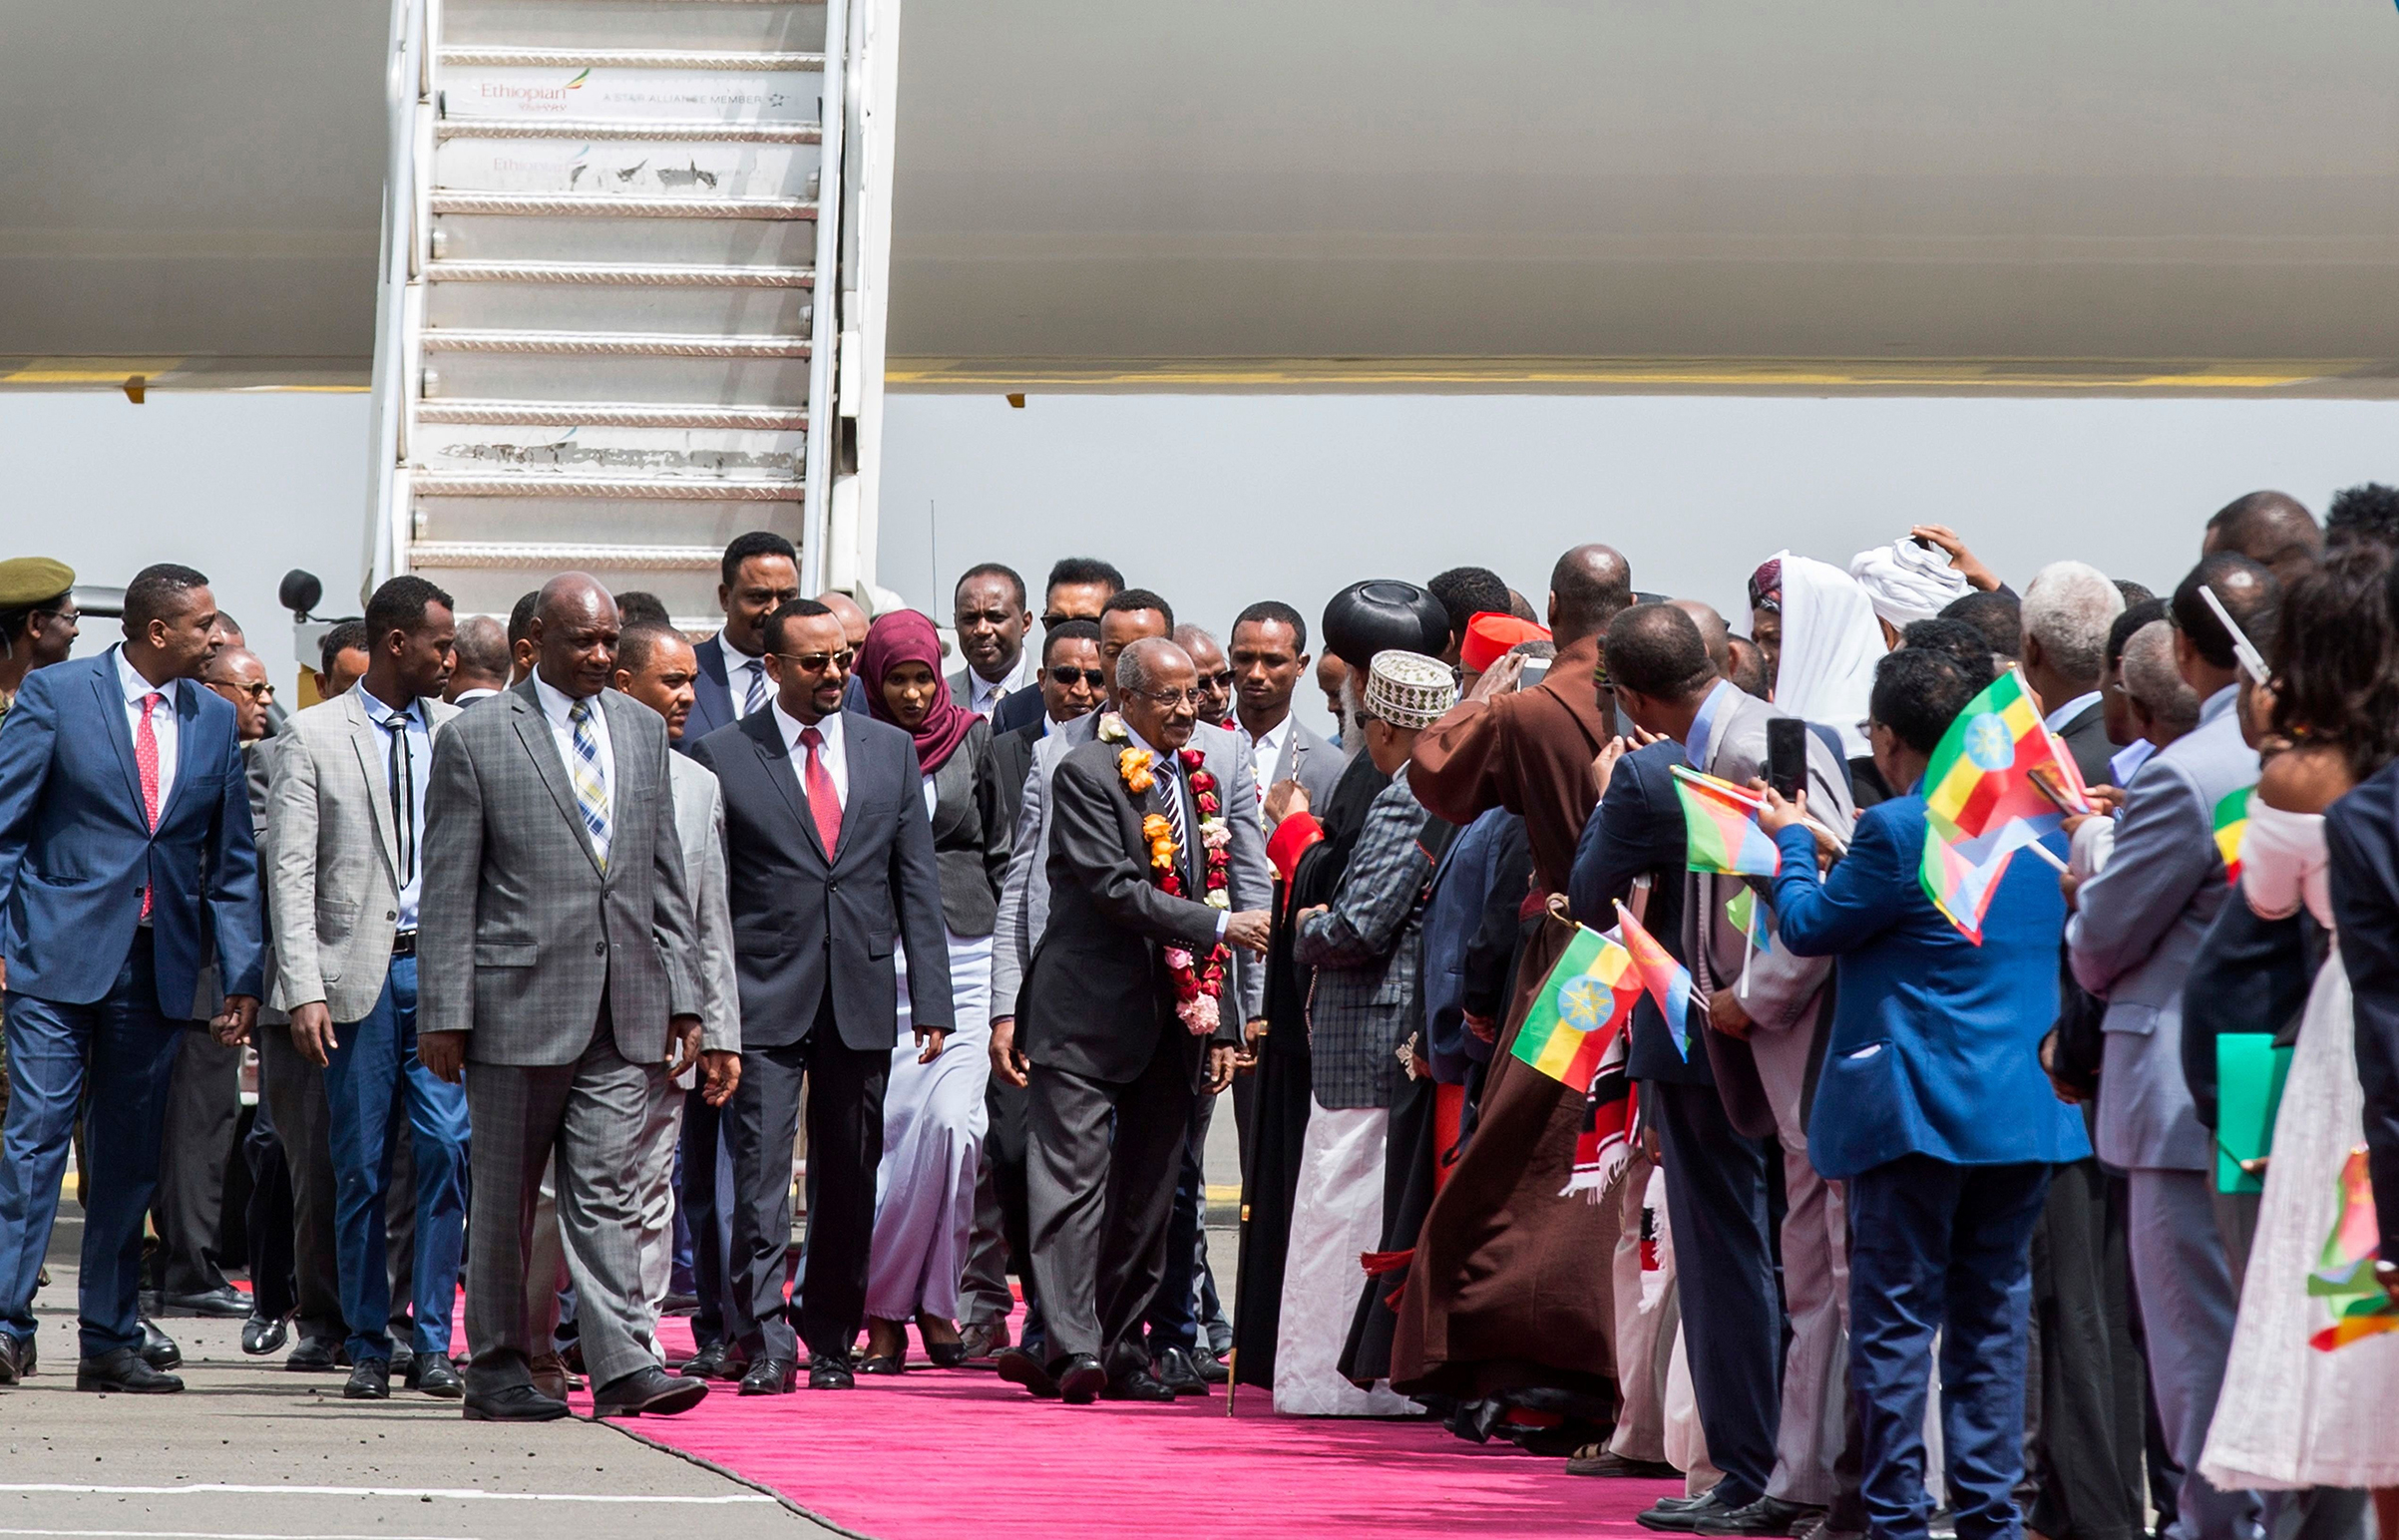 Ethiopia's Prime Minister Abiy Ahmed welcomes an Eritrean delegation in Addis Ababa on June 26, ahead of a Summit where the leaders agreed to end the 20 year war.